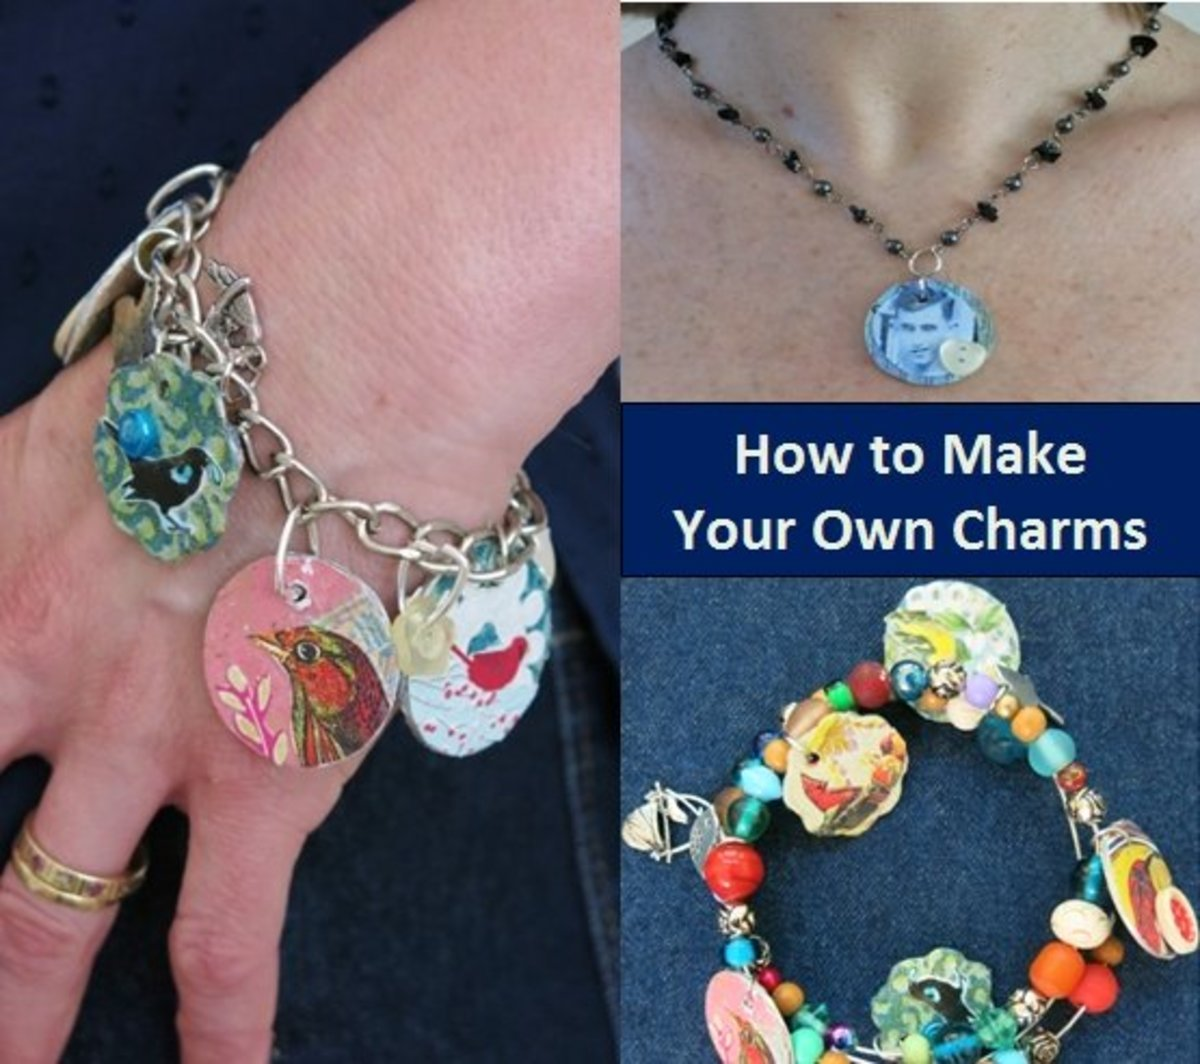 DIY Craft Tutorial:  How to Make Jewelry Charms from Recycled Materials